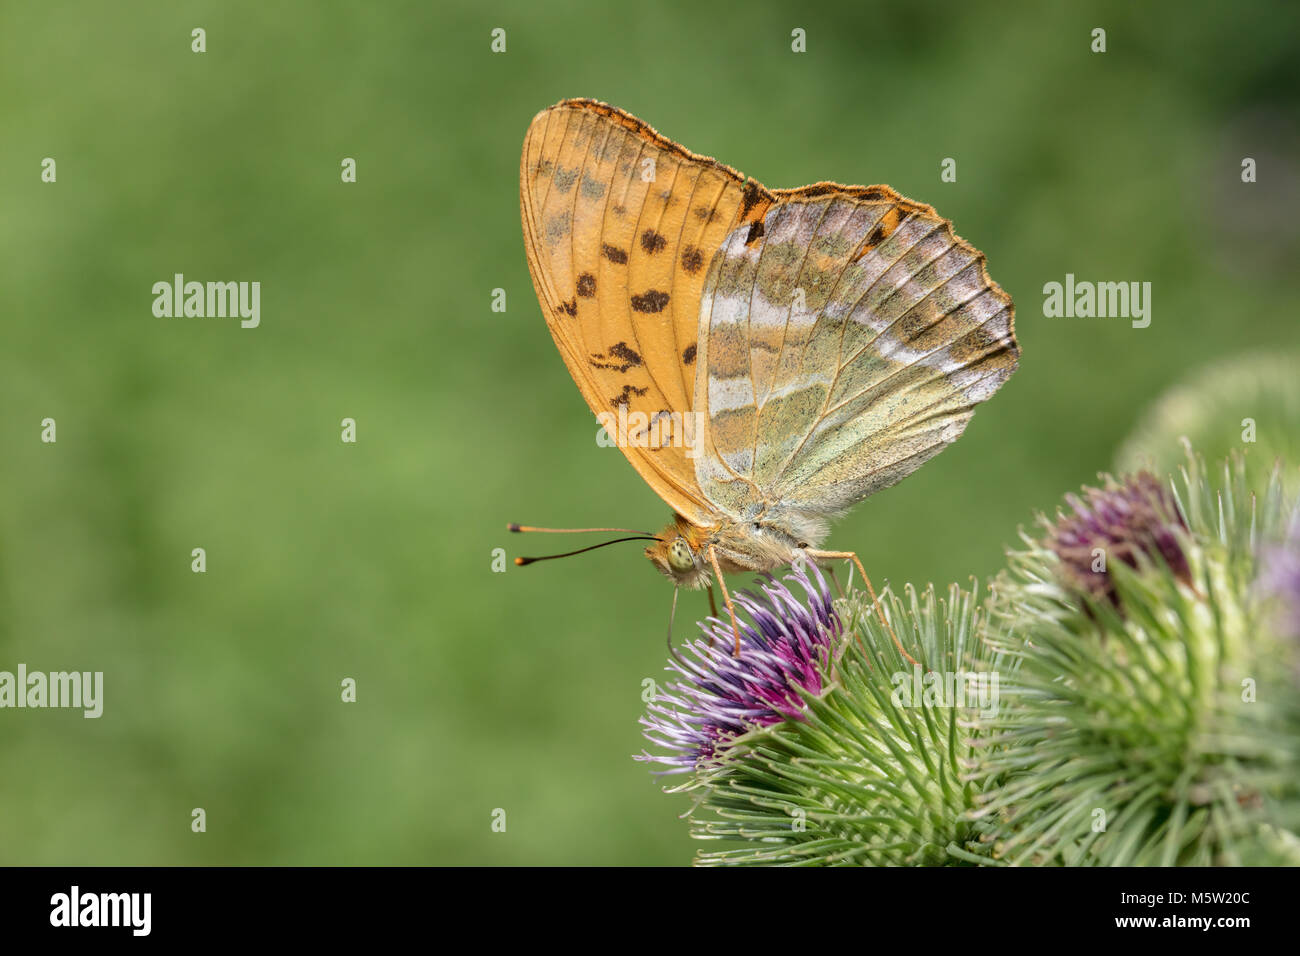 Silver-washed fritillary butterfly on thistle - Stock Image